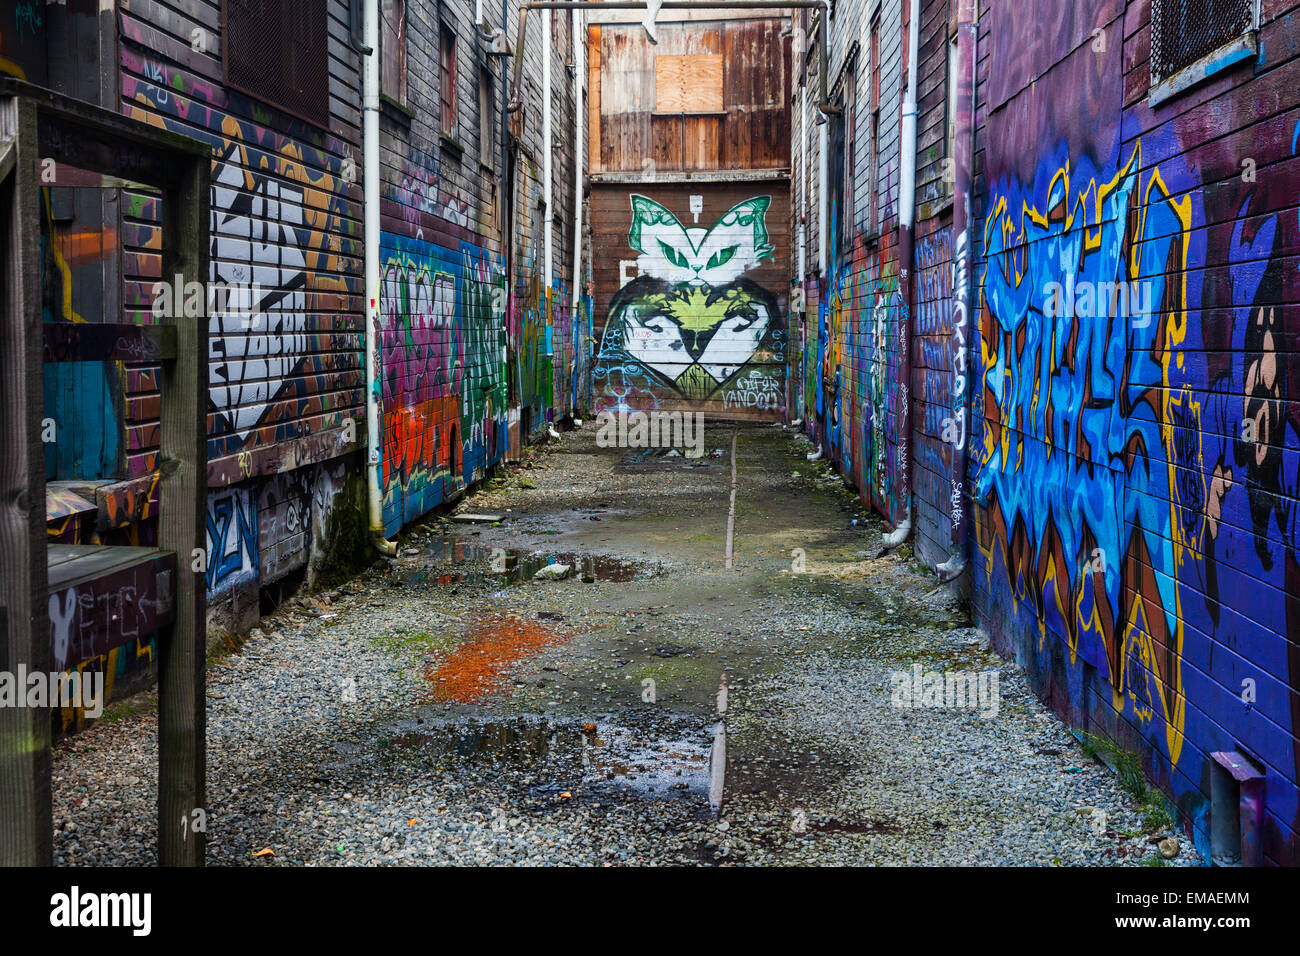 Back alley between older industrial warehouses on the east side of Vancouver - Stock Image